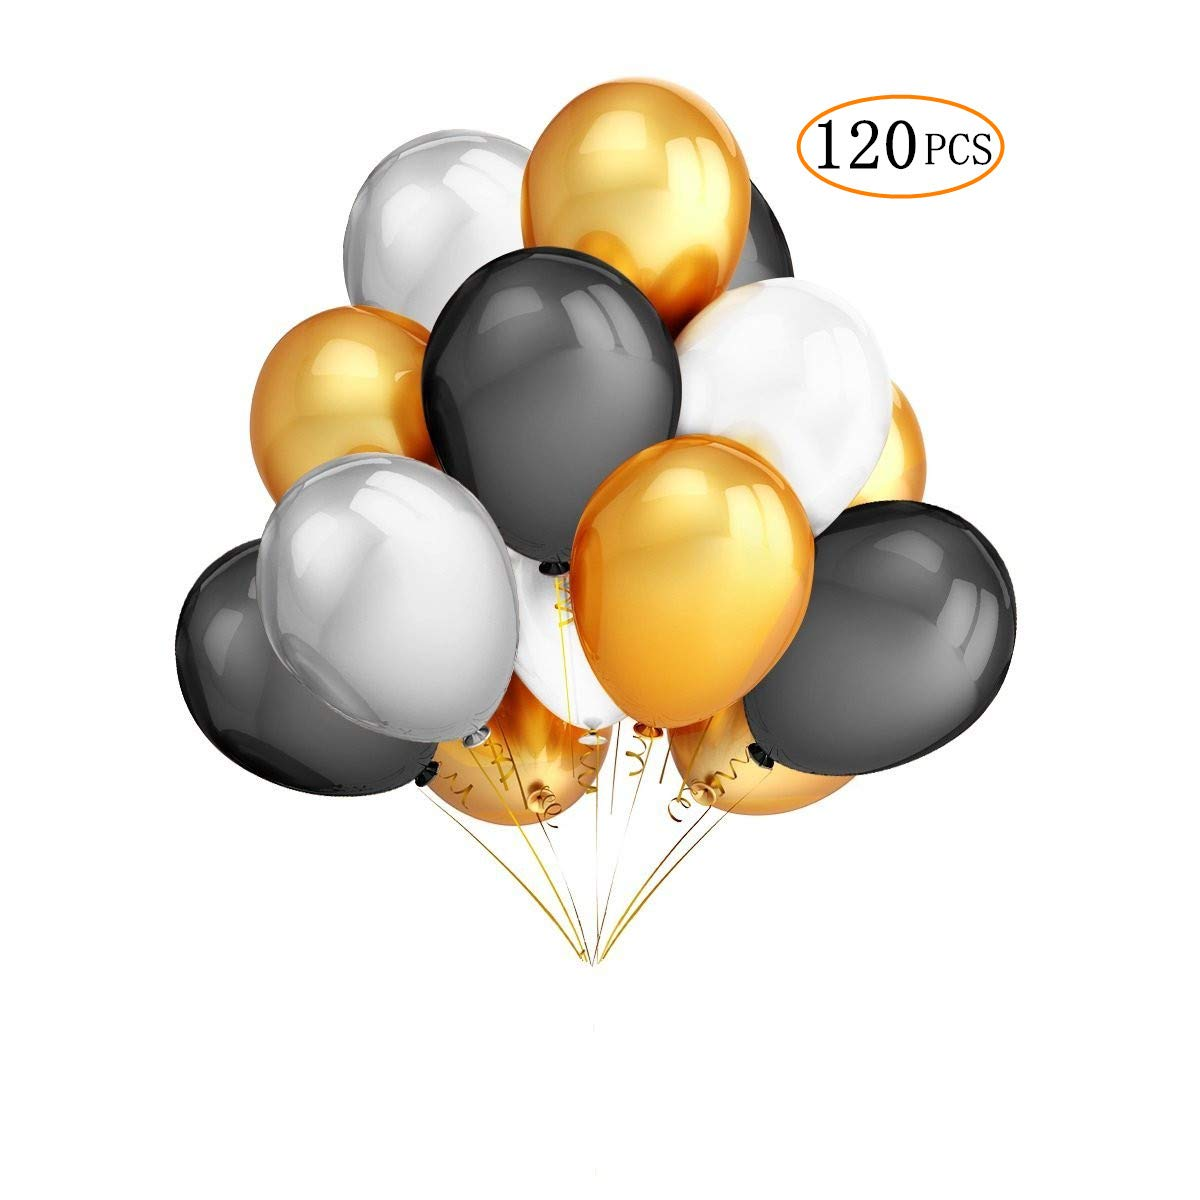 120 Pcs 12'' Gold Black White and Silver Round Latex Balloons for Graduation Baby Shower Wedding Birthday Bachelorette Party Decorations Supplies